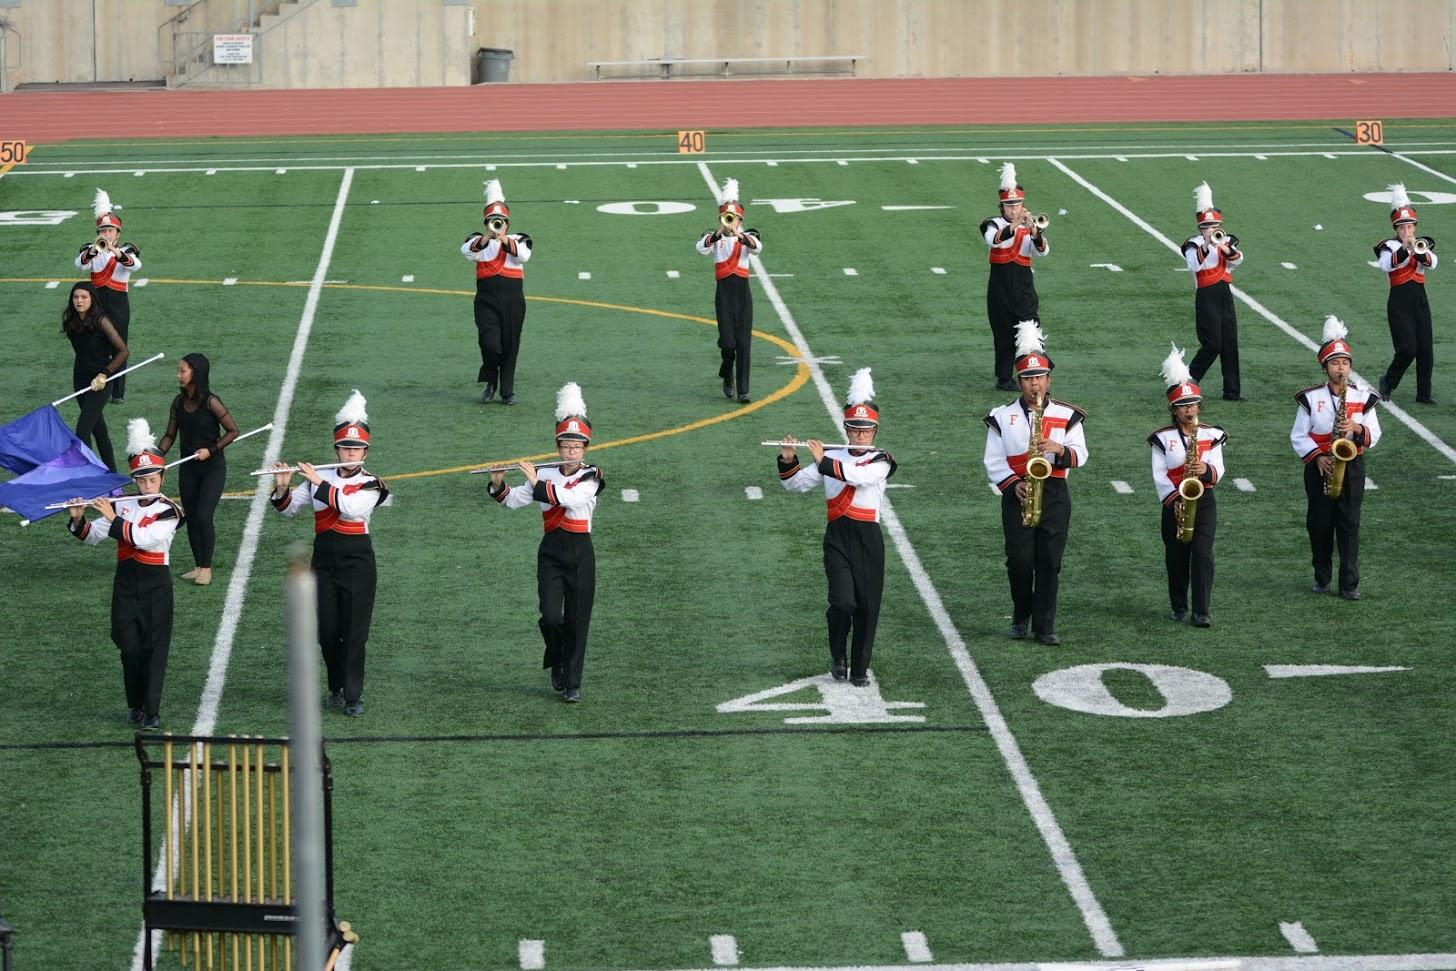 """The band performs their show """"Imprints"""" at the Newport Harbor Open Tournament. Photo by Helen Craft."""